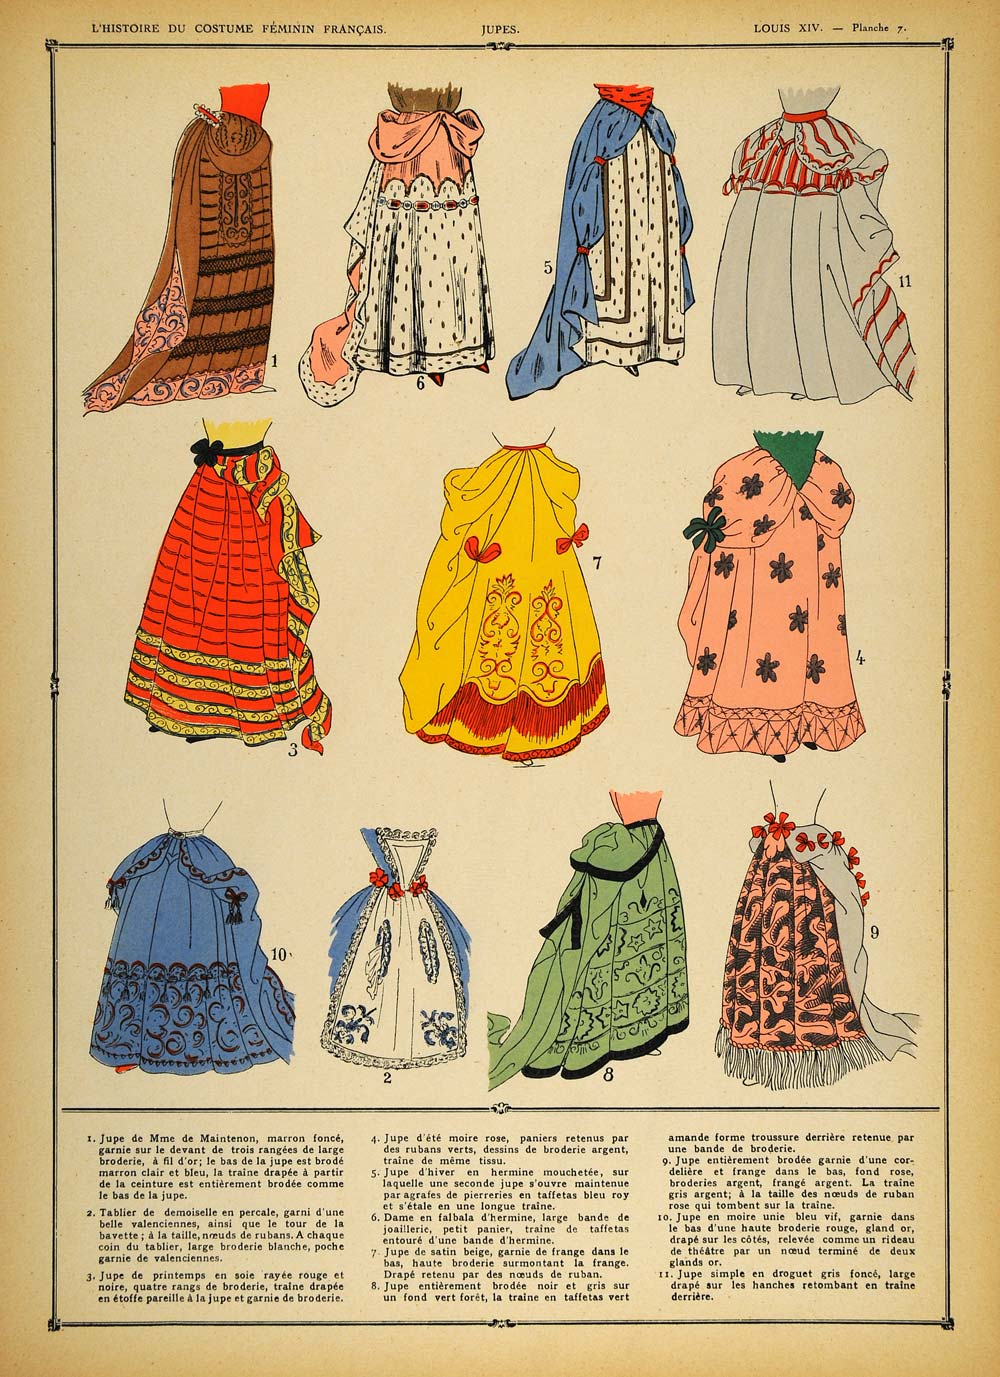 1922 Pochoir Louis XIV Costume French Women Skirts NICE - ORIGINAL COS1